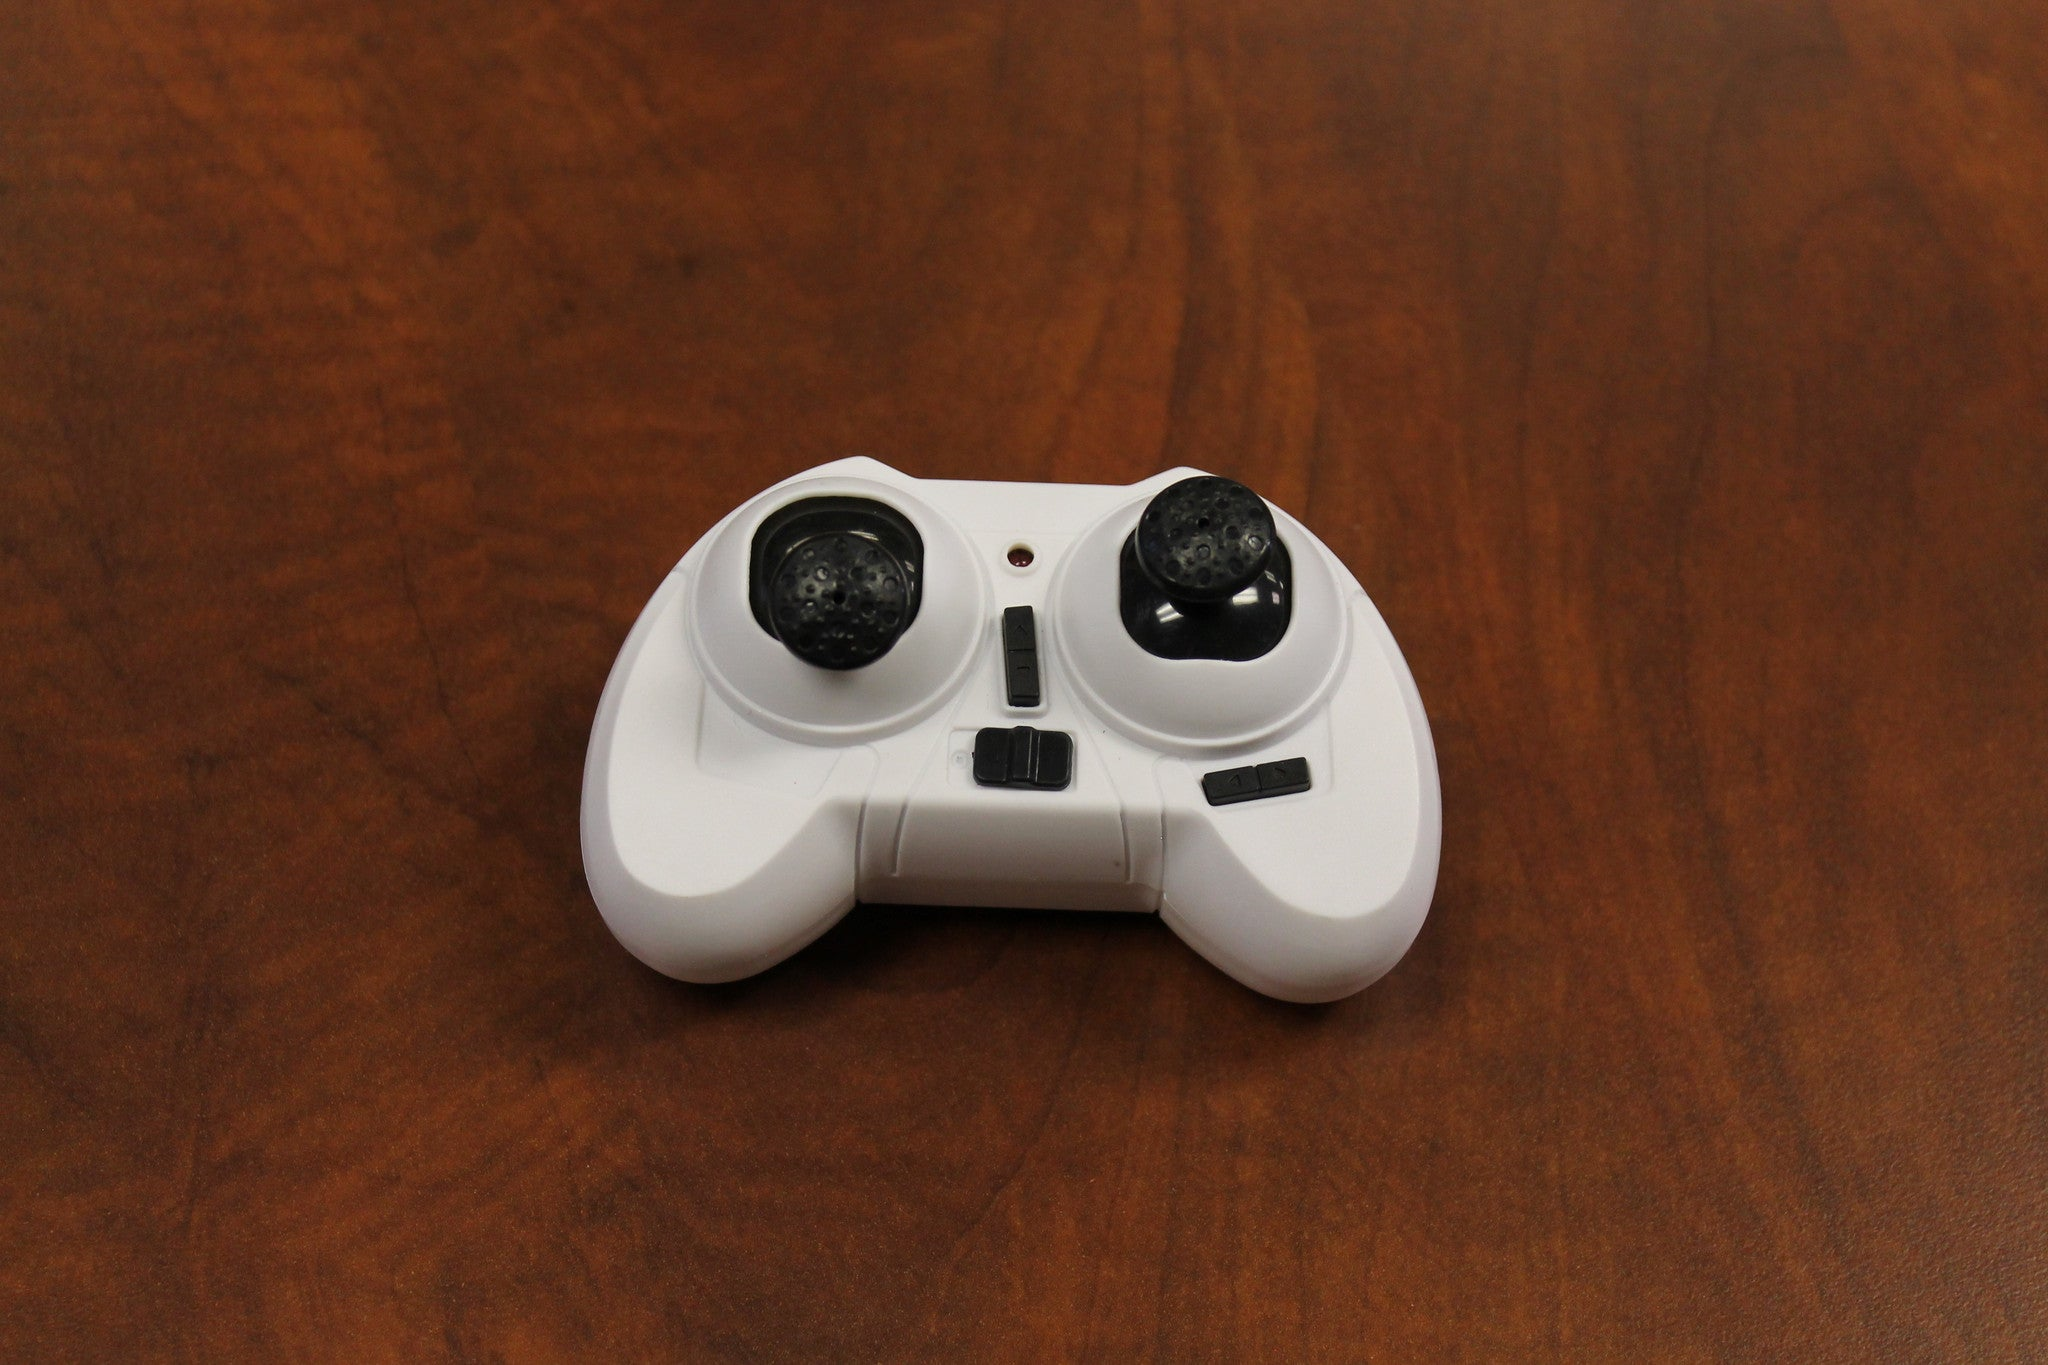 Controller - Nano Drone for Beginners